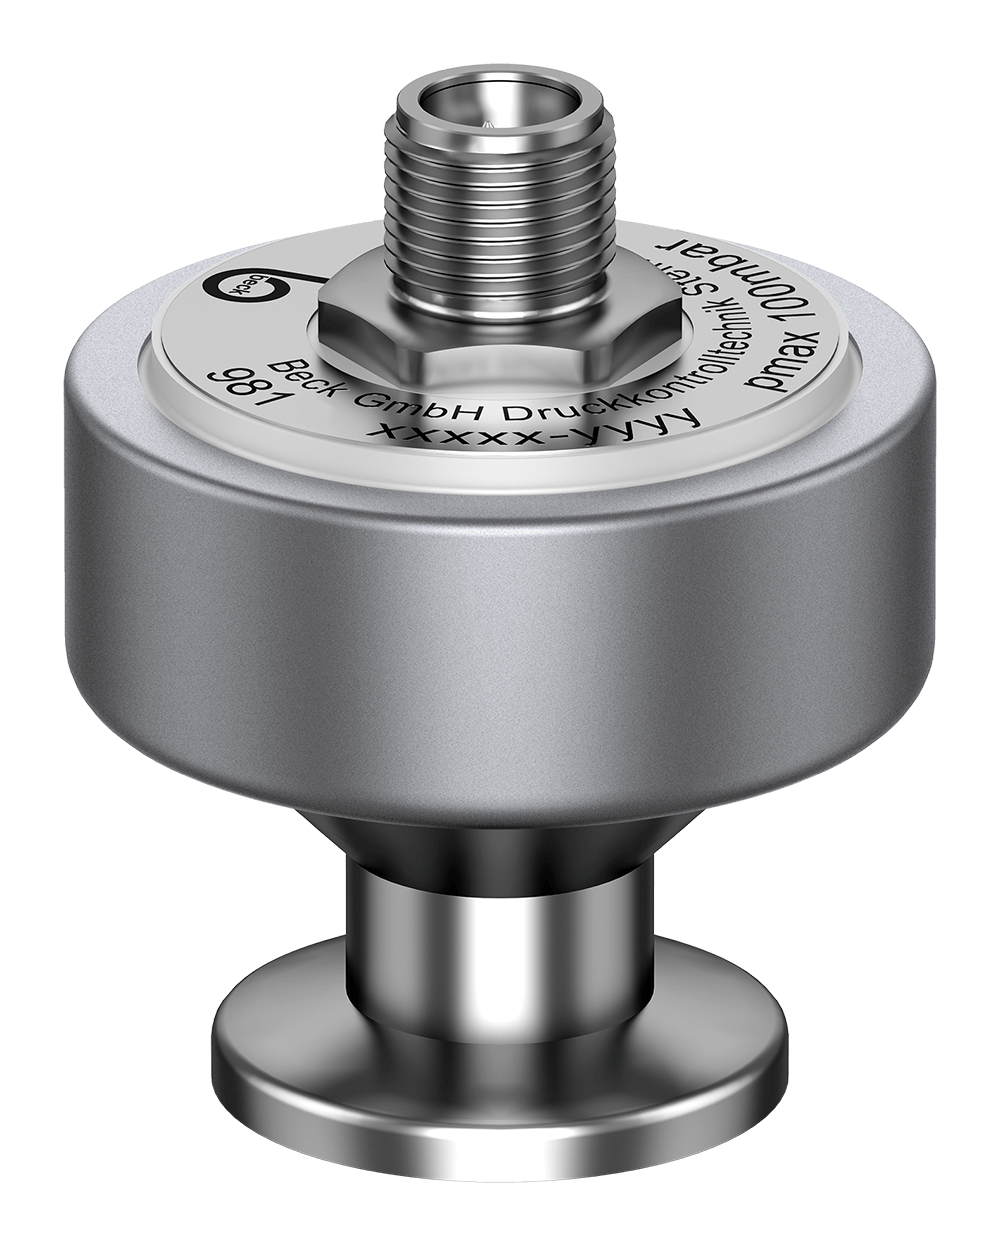 Pressure Transmitter 981 with stainless steel flange pressure connection